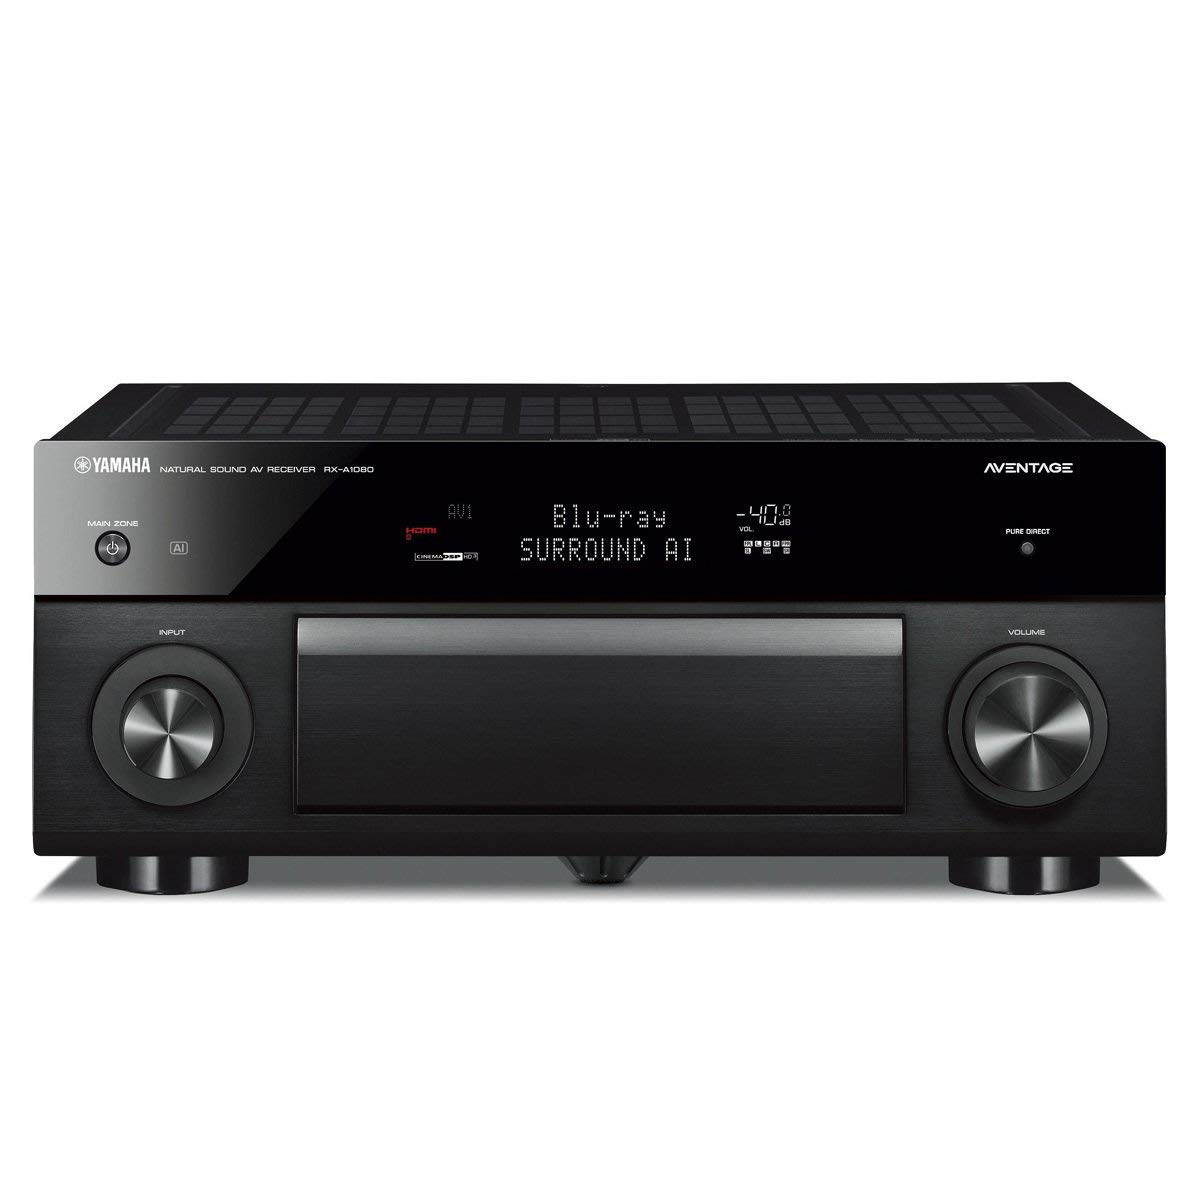 Yamaha AVENTAGE RX-A1080 7 2-Channel Network A/V Receiver